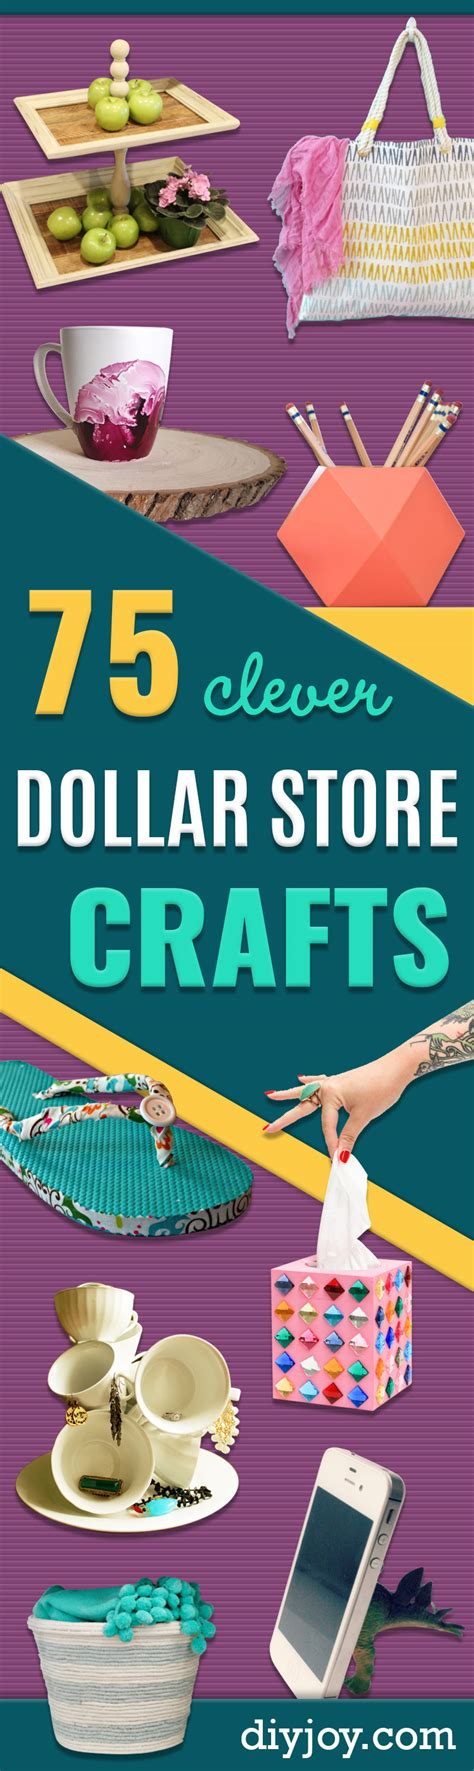 dollar store crafts the 75 absolute best dollar store crafts page 4 of